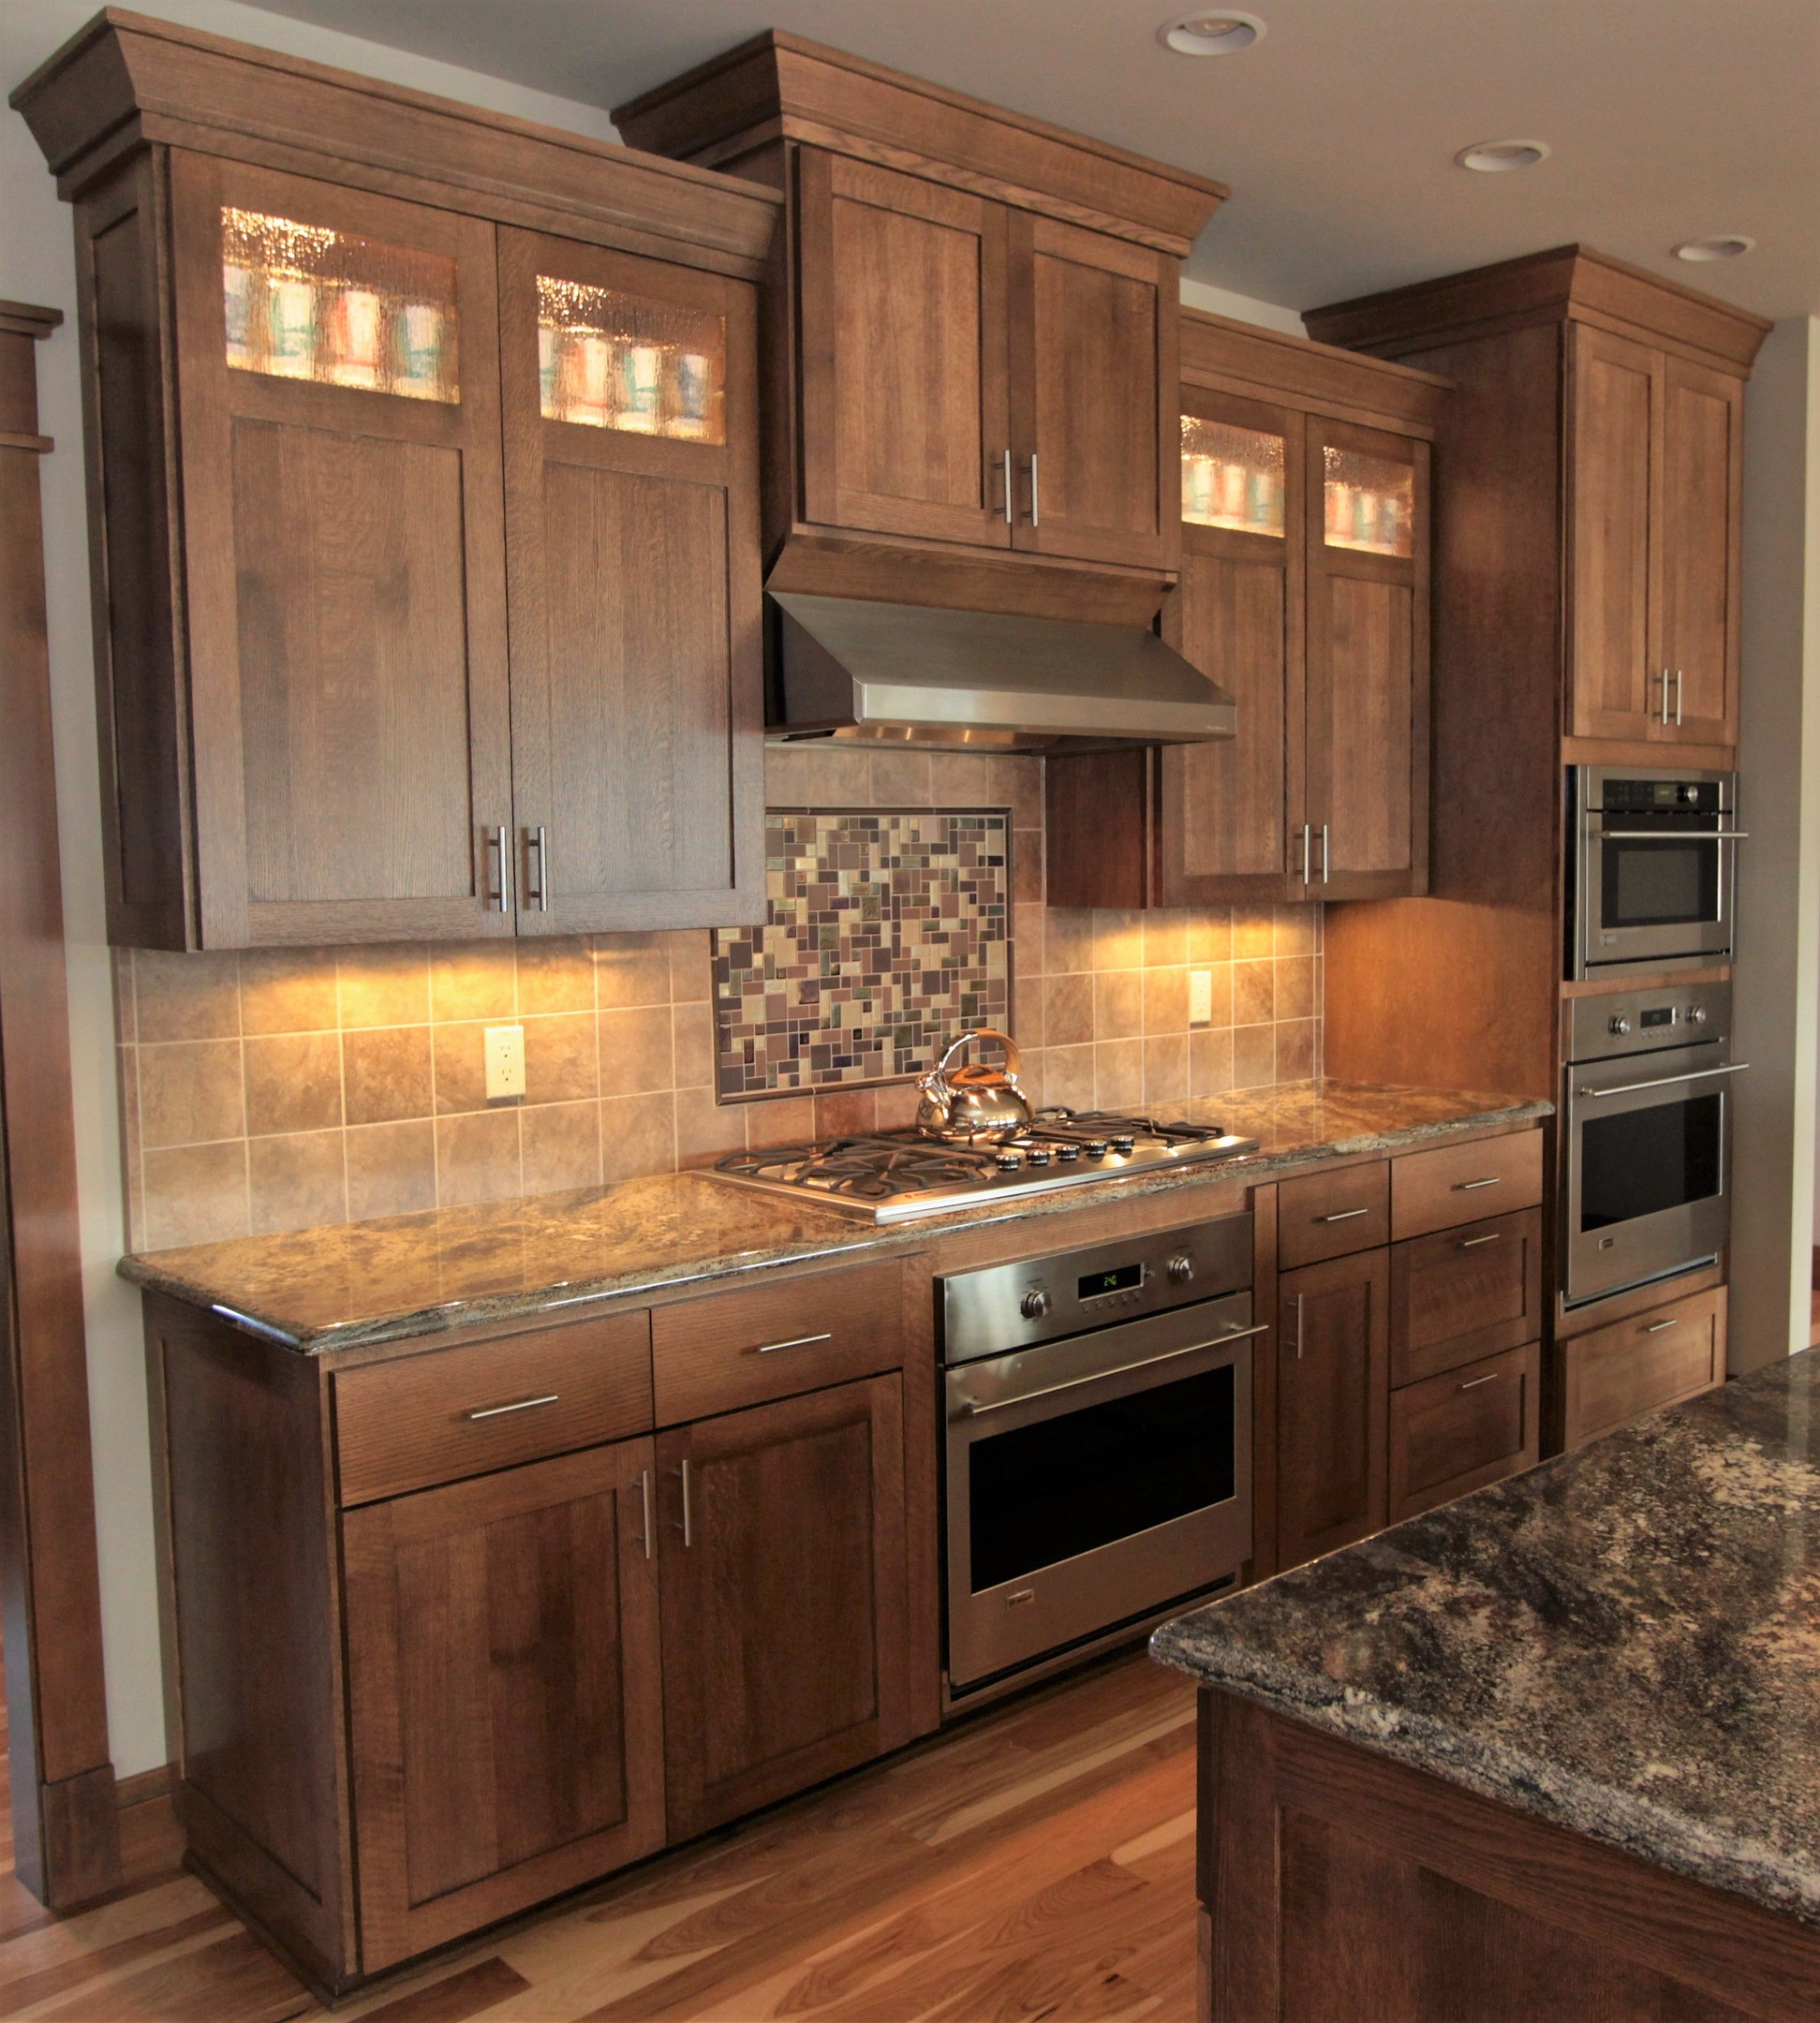 Pictures Of Oak Kitchen Cabinets: Affordable Custom Cabinets